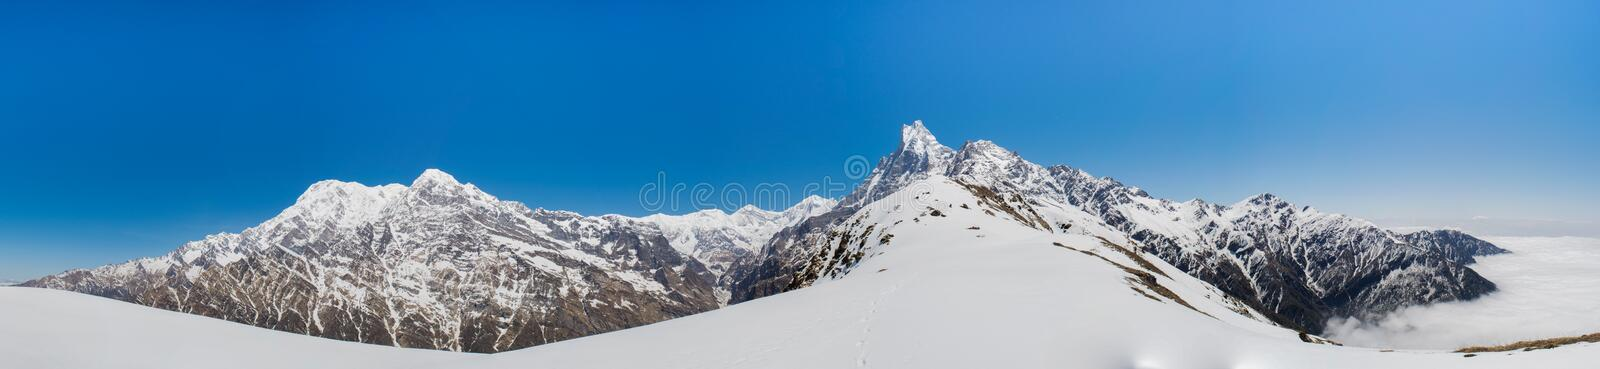 Panorama epic landscape view of beautiful Himalaya mountains covered with snow at Mardi Himal trekking area. In Nepal stock photos